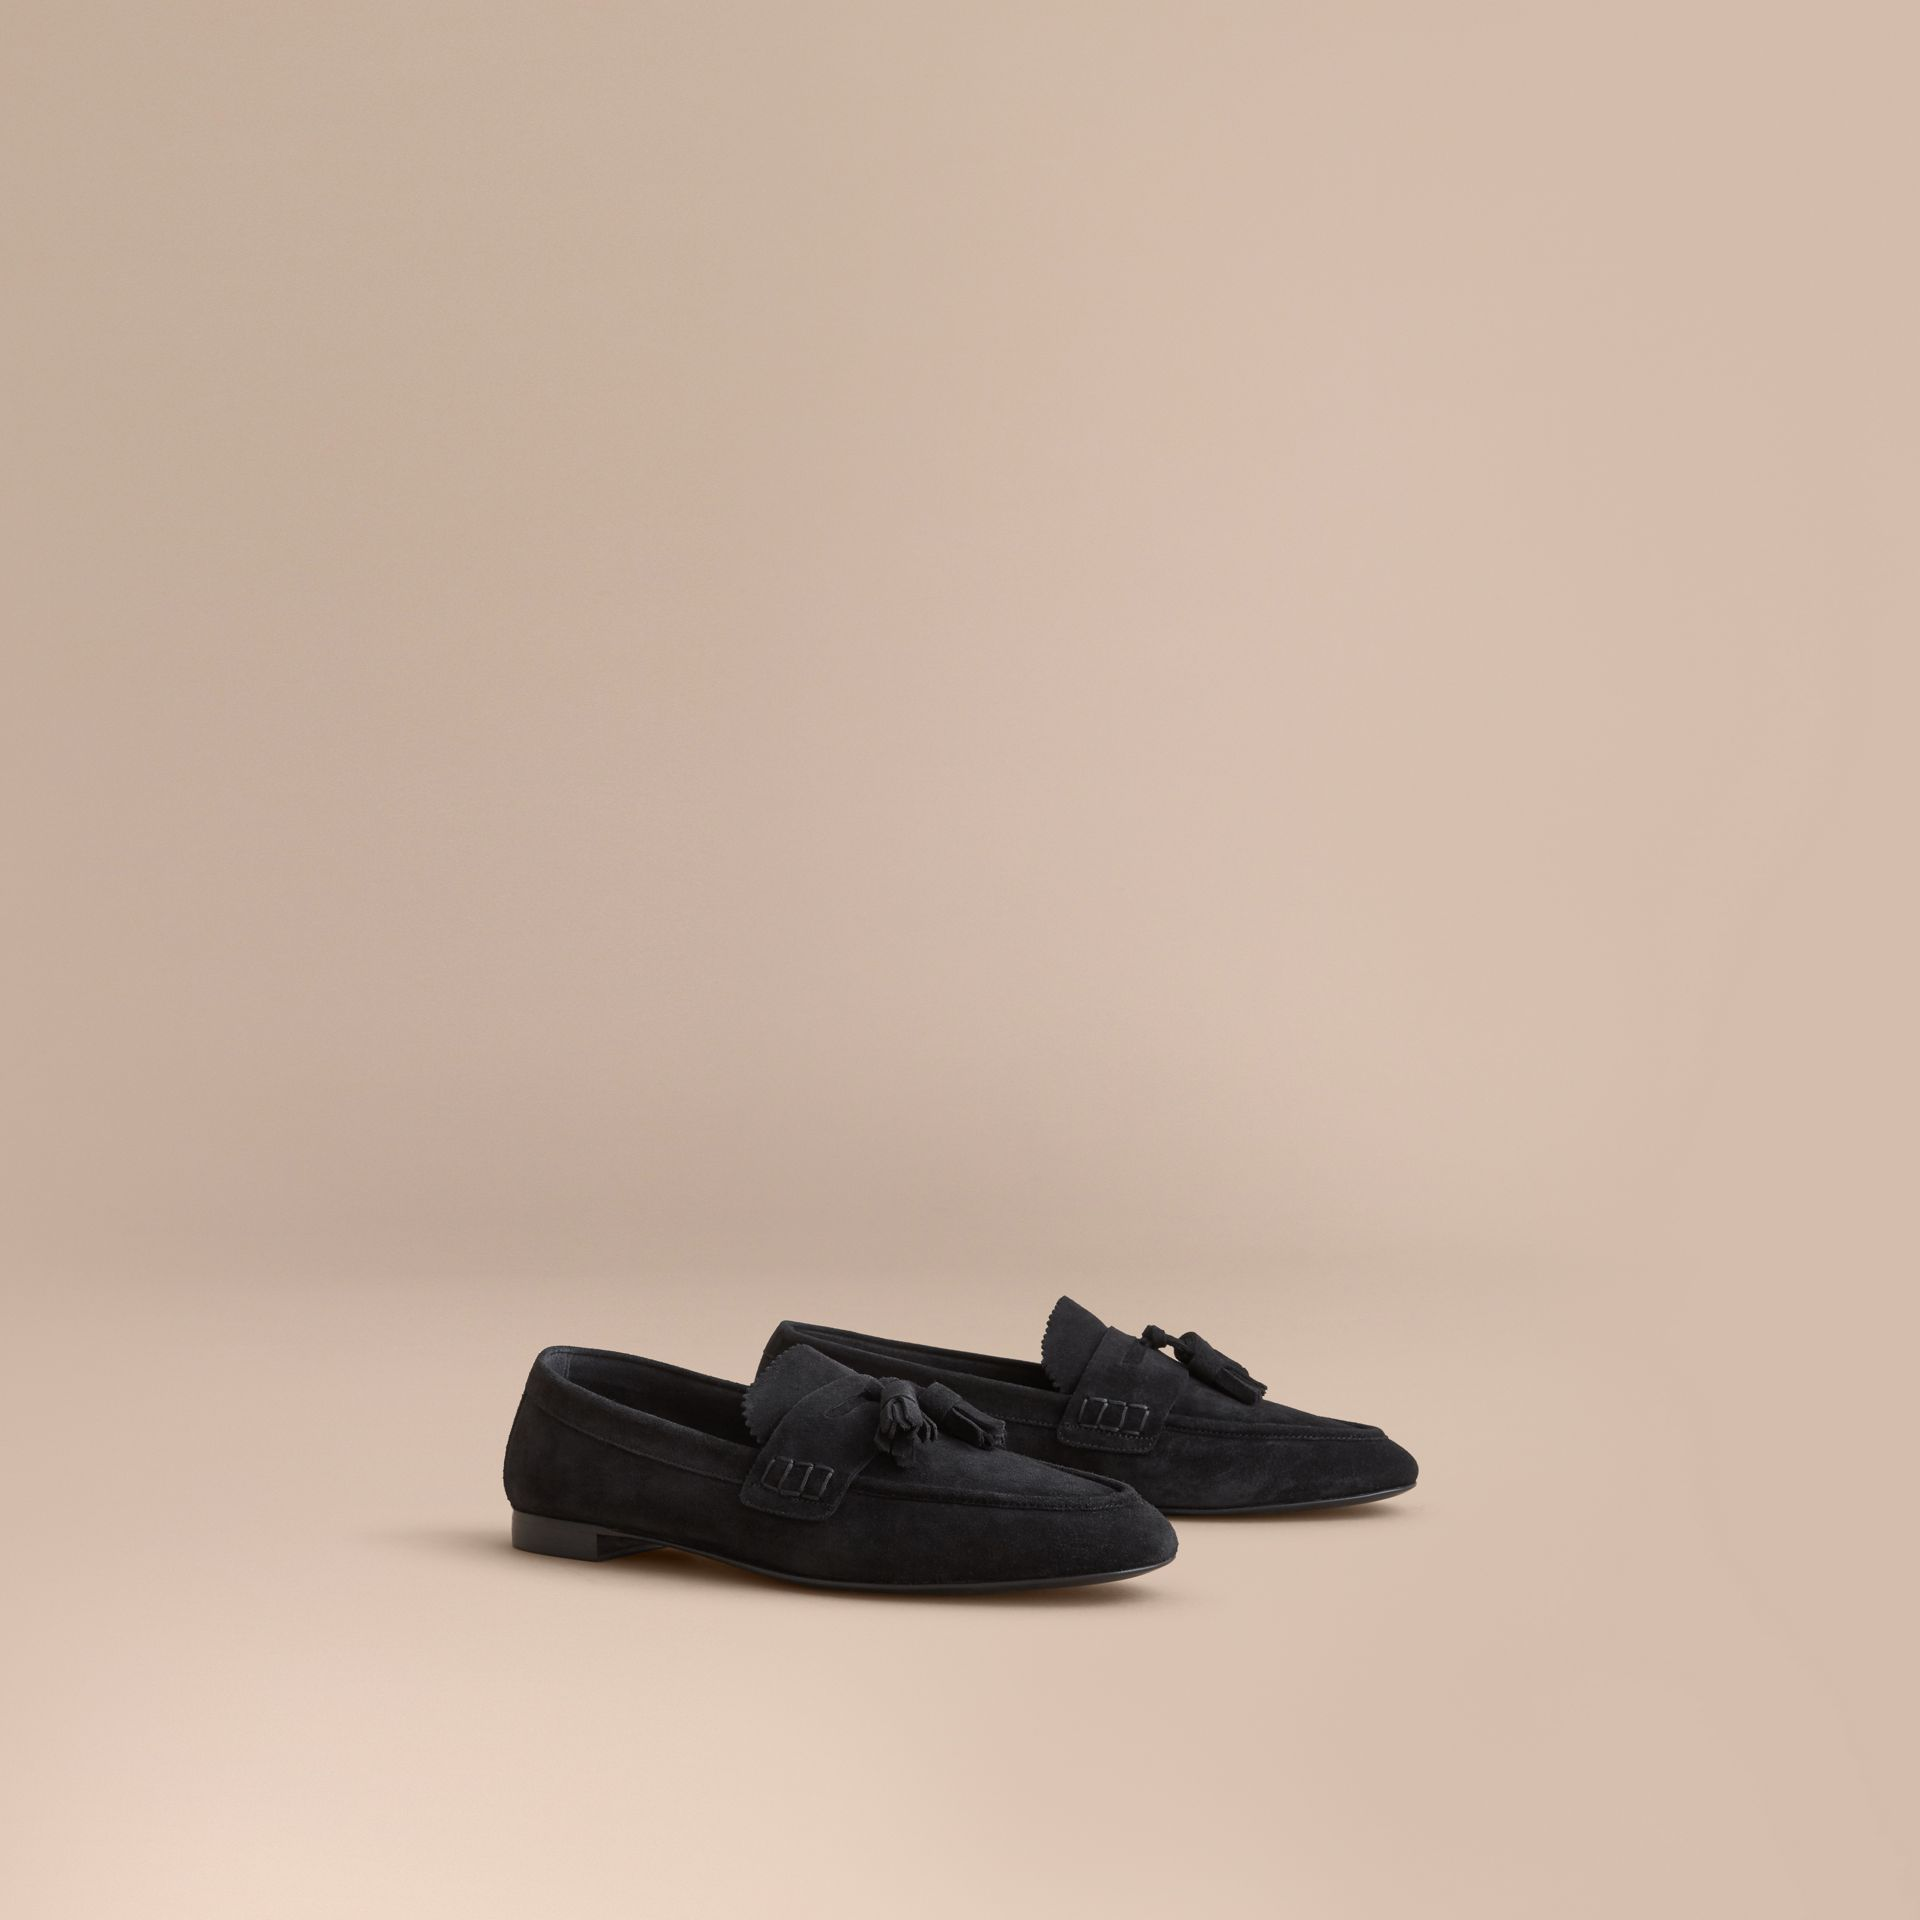 Tasselled Suede Loafers in Black - Women | Burberry Canada - gallery image 1